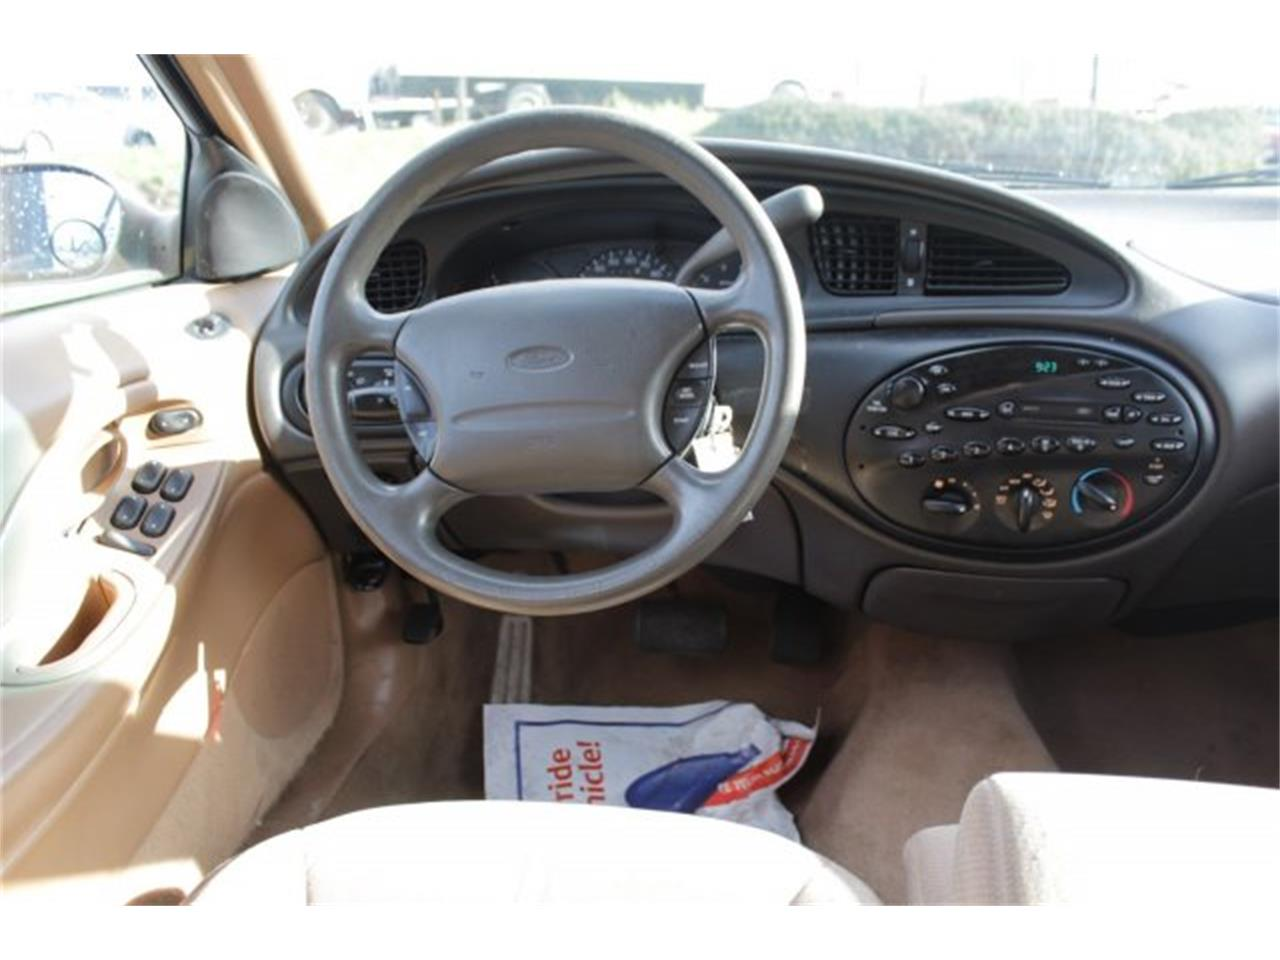 Large Picture of '96 Ford Taurus located in Washington - $2,995.00 - JJGX